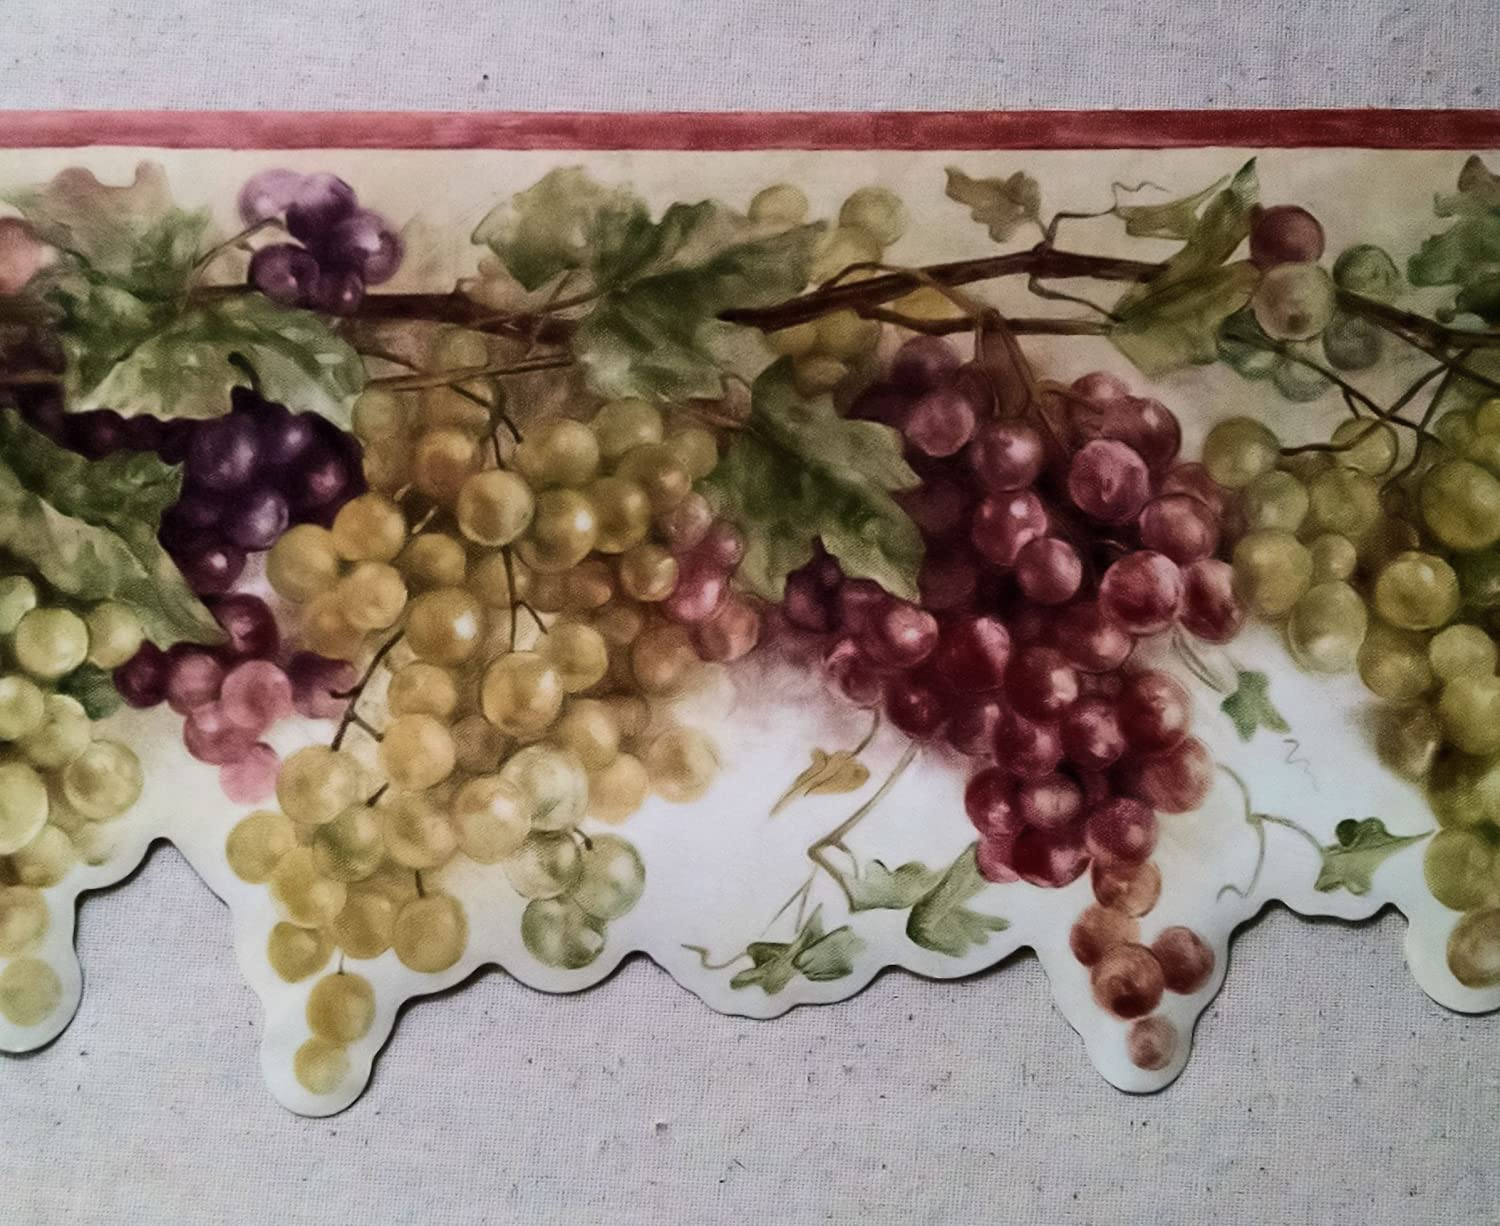 Wallpaper Border Tuscan Grapevine Rust Red Purple & Green Grapes on ...